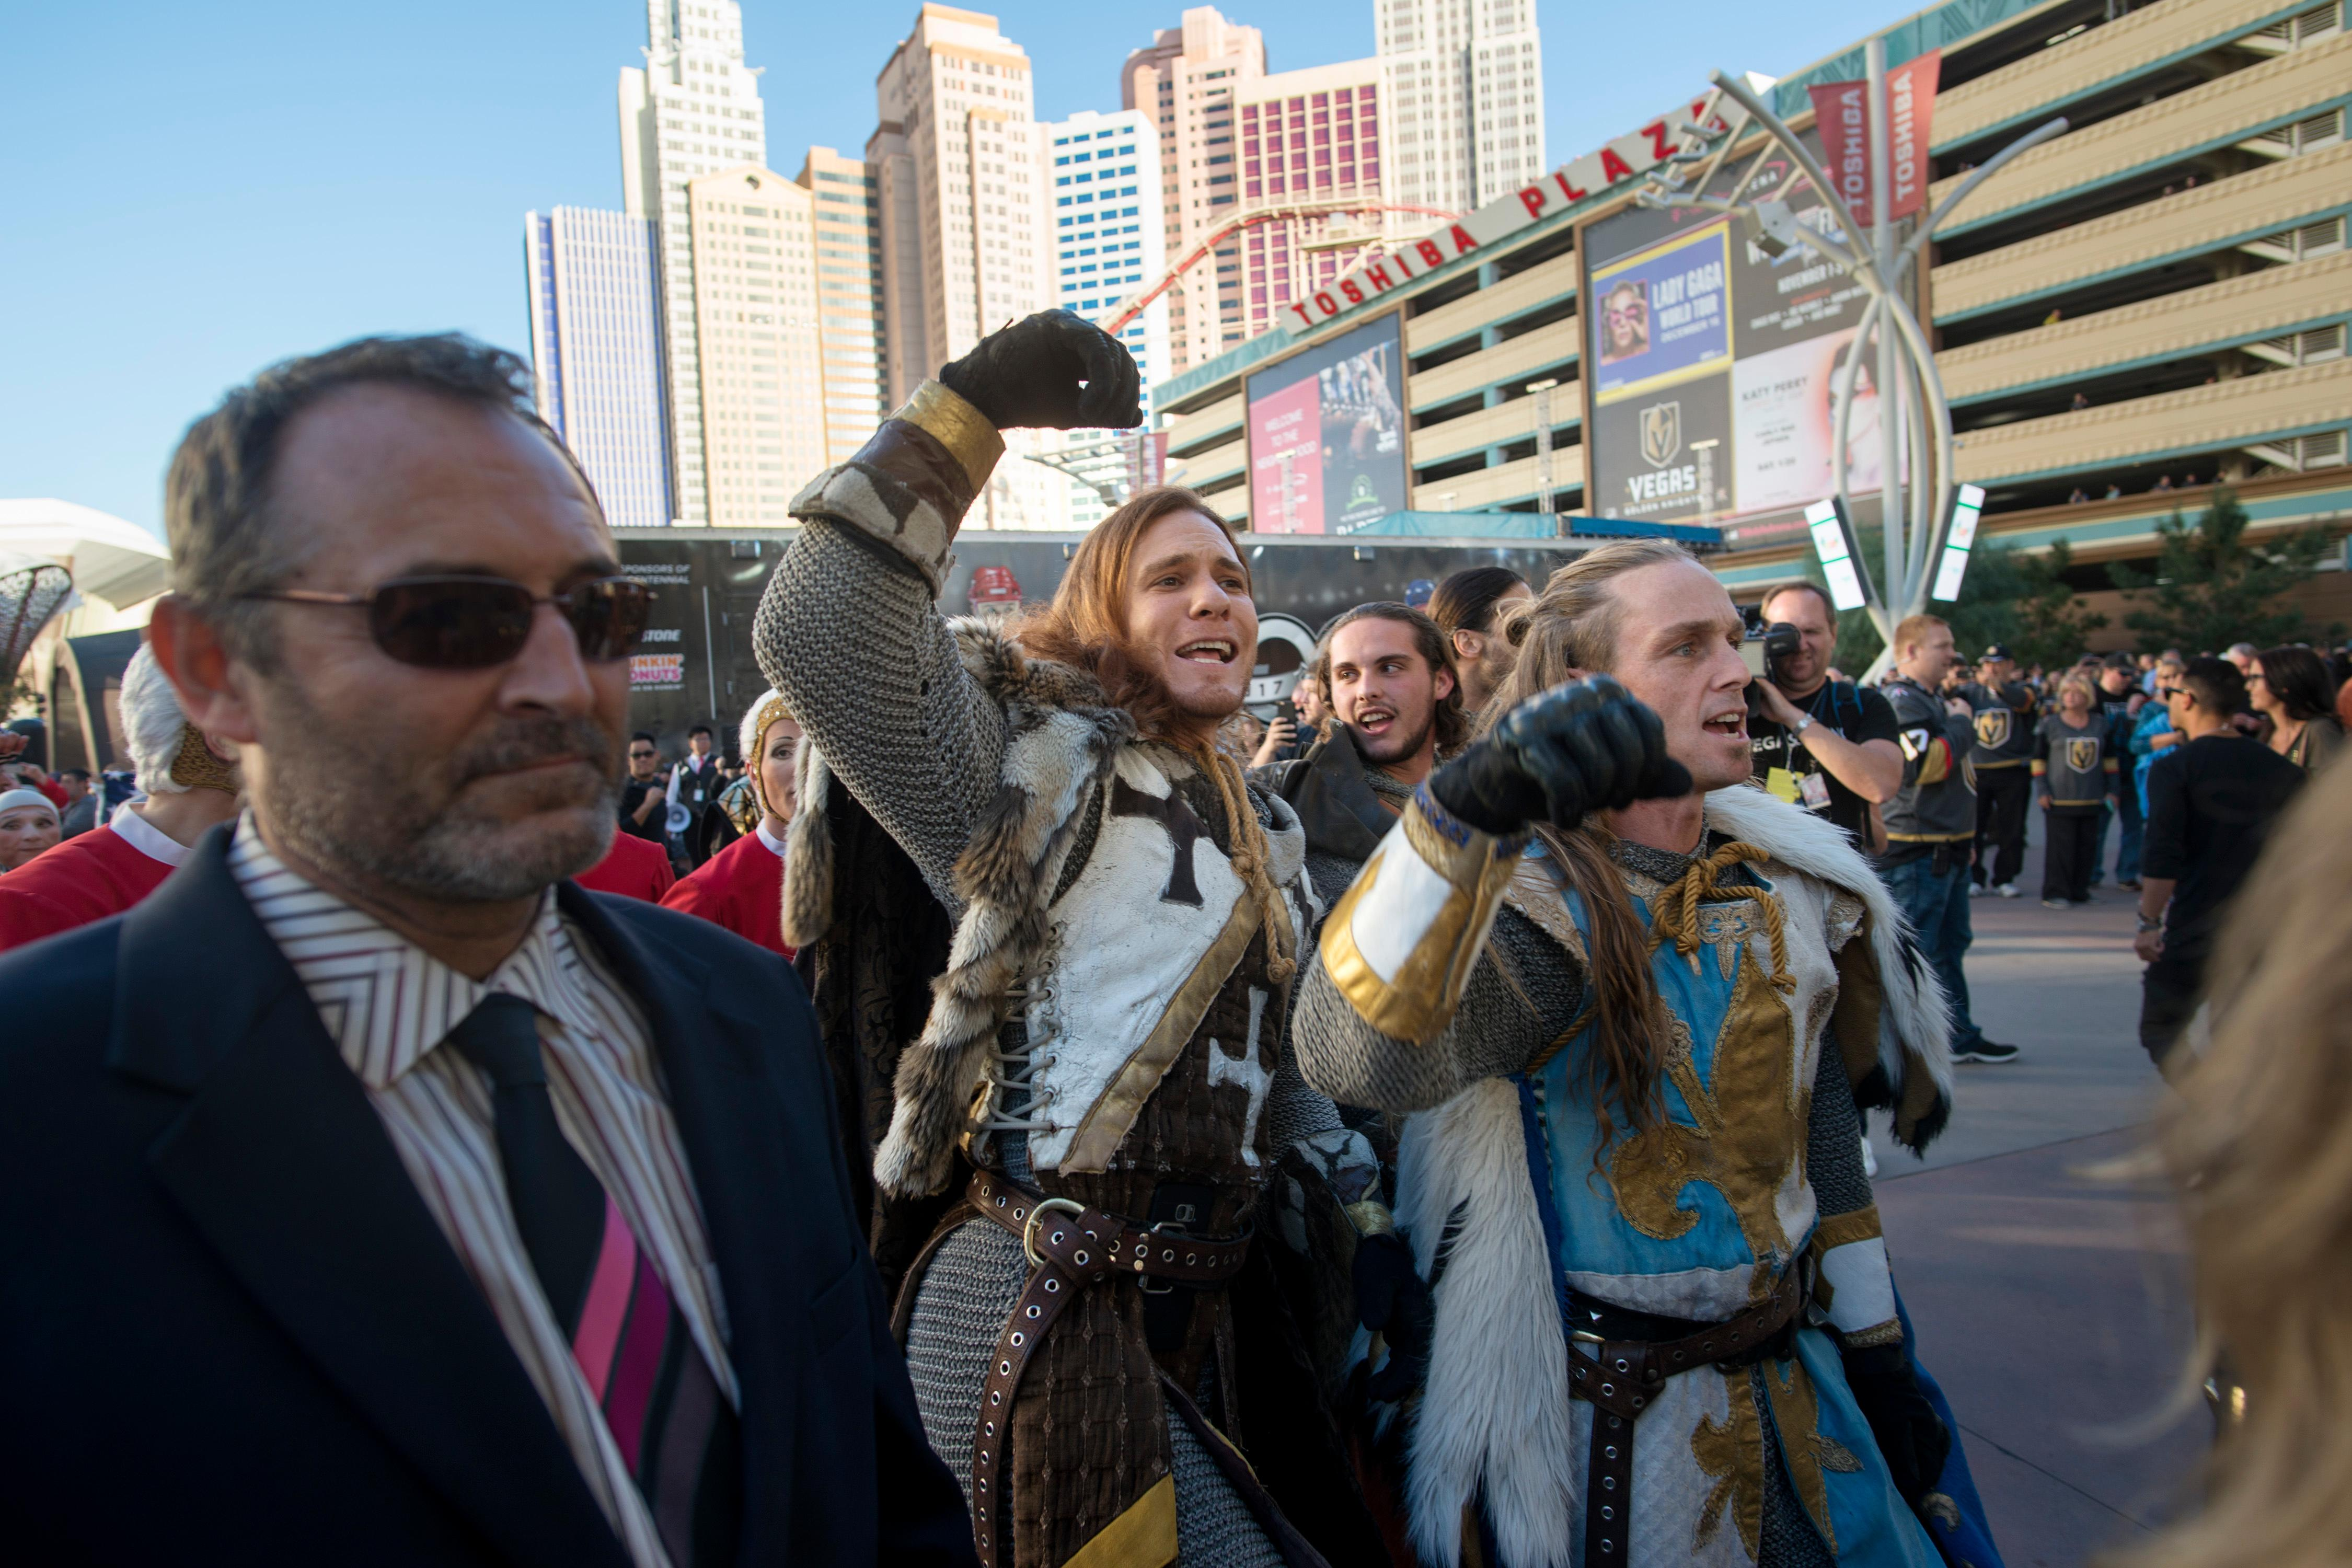 Vegas Golden Knights promotional crew members parade to the T-Mobile Arena before the Vegas Golden Knights home opener Tuesday, Oct. 10, 2017, against the Arizona Coyotes. CREDIT: Sam Morris/Las Vegas News Bureau